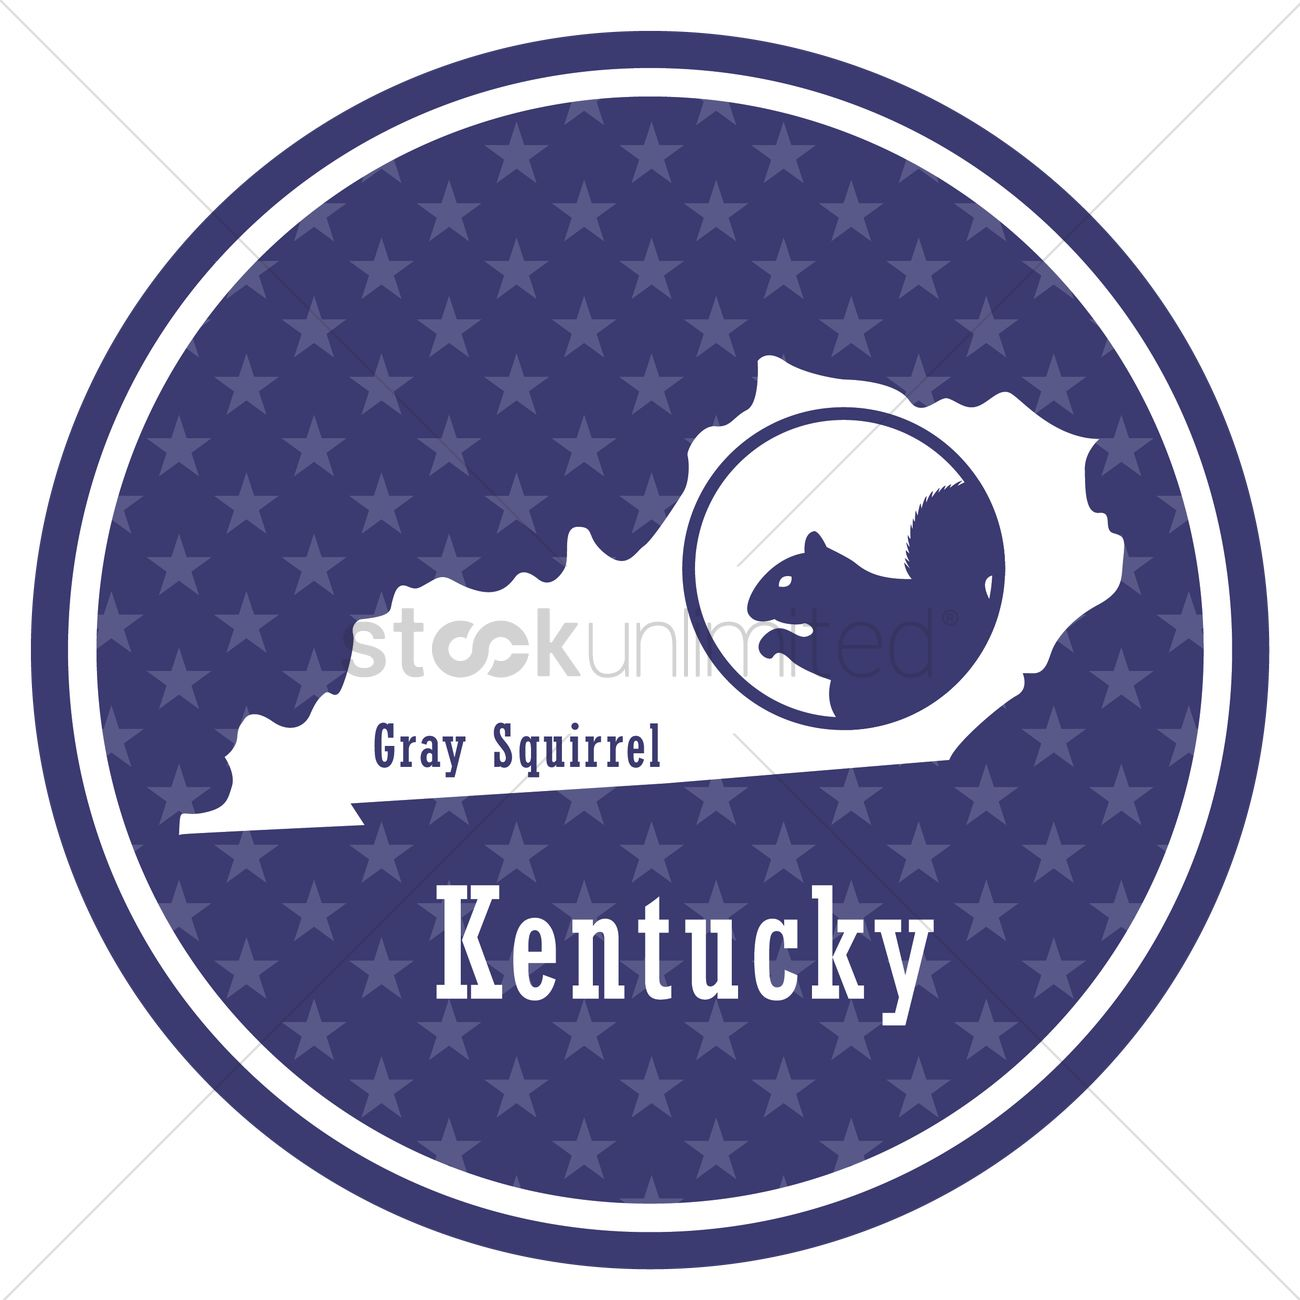 Kentucky state map with gray squirrel Vector Image - 1581701 ... on massachusetts state map, tennessee map, maine state map, tenn state map, u.s map, maryland state map, louisiana on us map, south dakota state map, indiana map, kentucky capitol building, arizona state map, new york state map, arkansas state map, texas state map, louisiana state map, pennsylvania state map, minnesota map, virginia state map, colorado state map, louisville map,